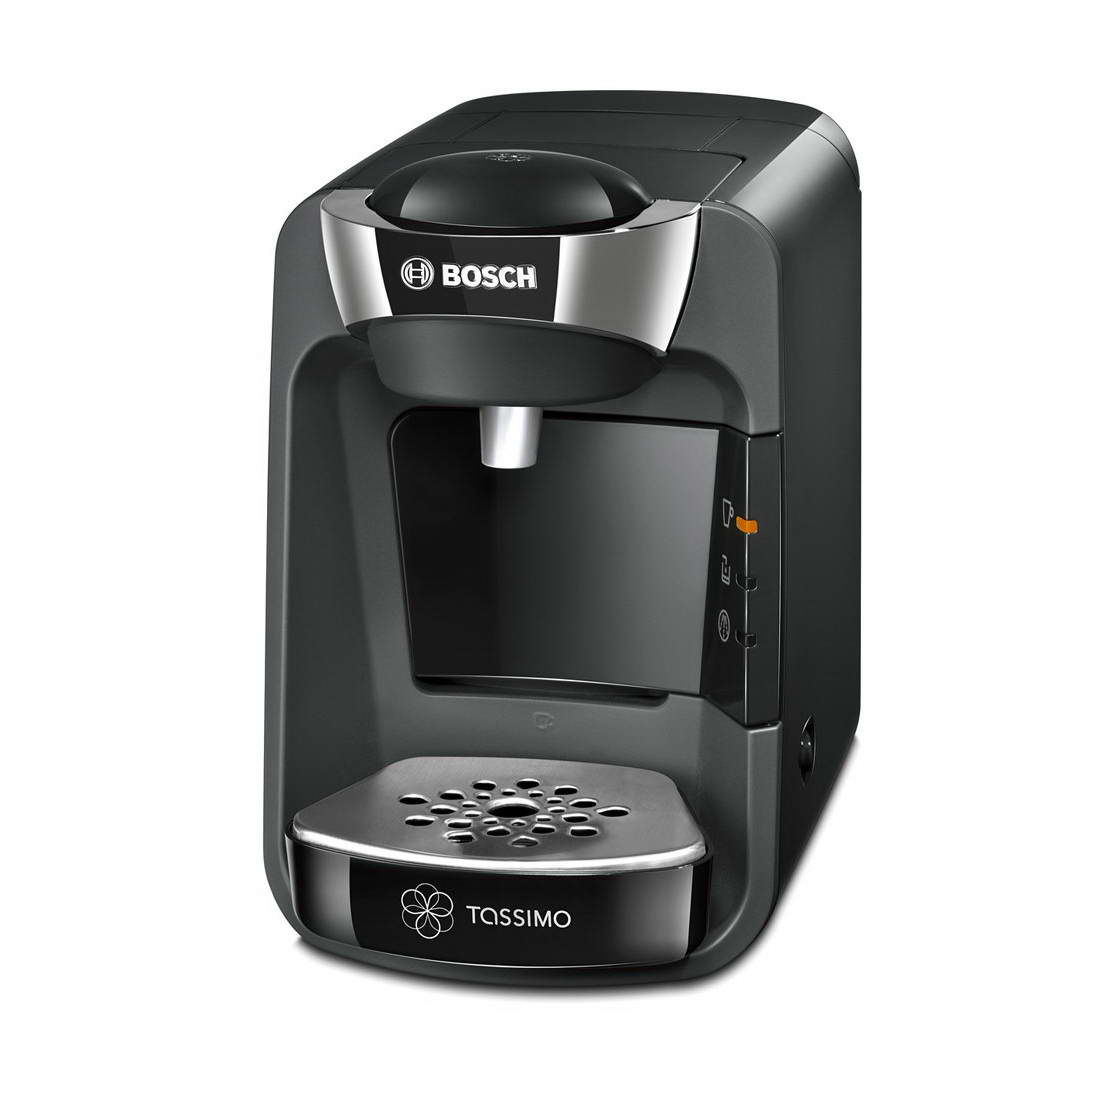 bosch tassimo t32 suny coffee machine tas3202gb around. Black Bedroom Furniture Sets. Home Design Ideas